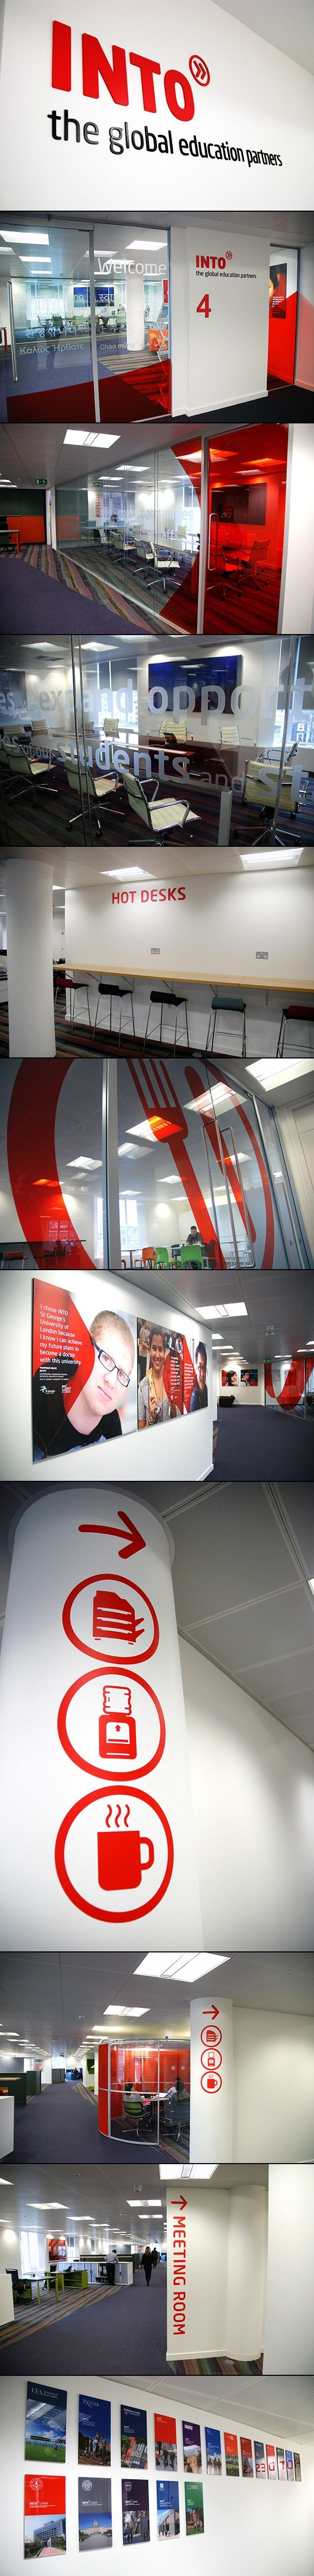 INTO Head Office branding and signage   by Richard Wise - created via http://pinthemall.net